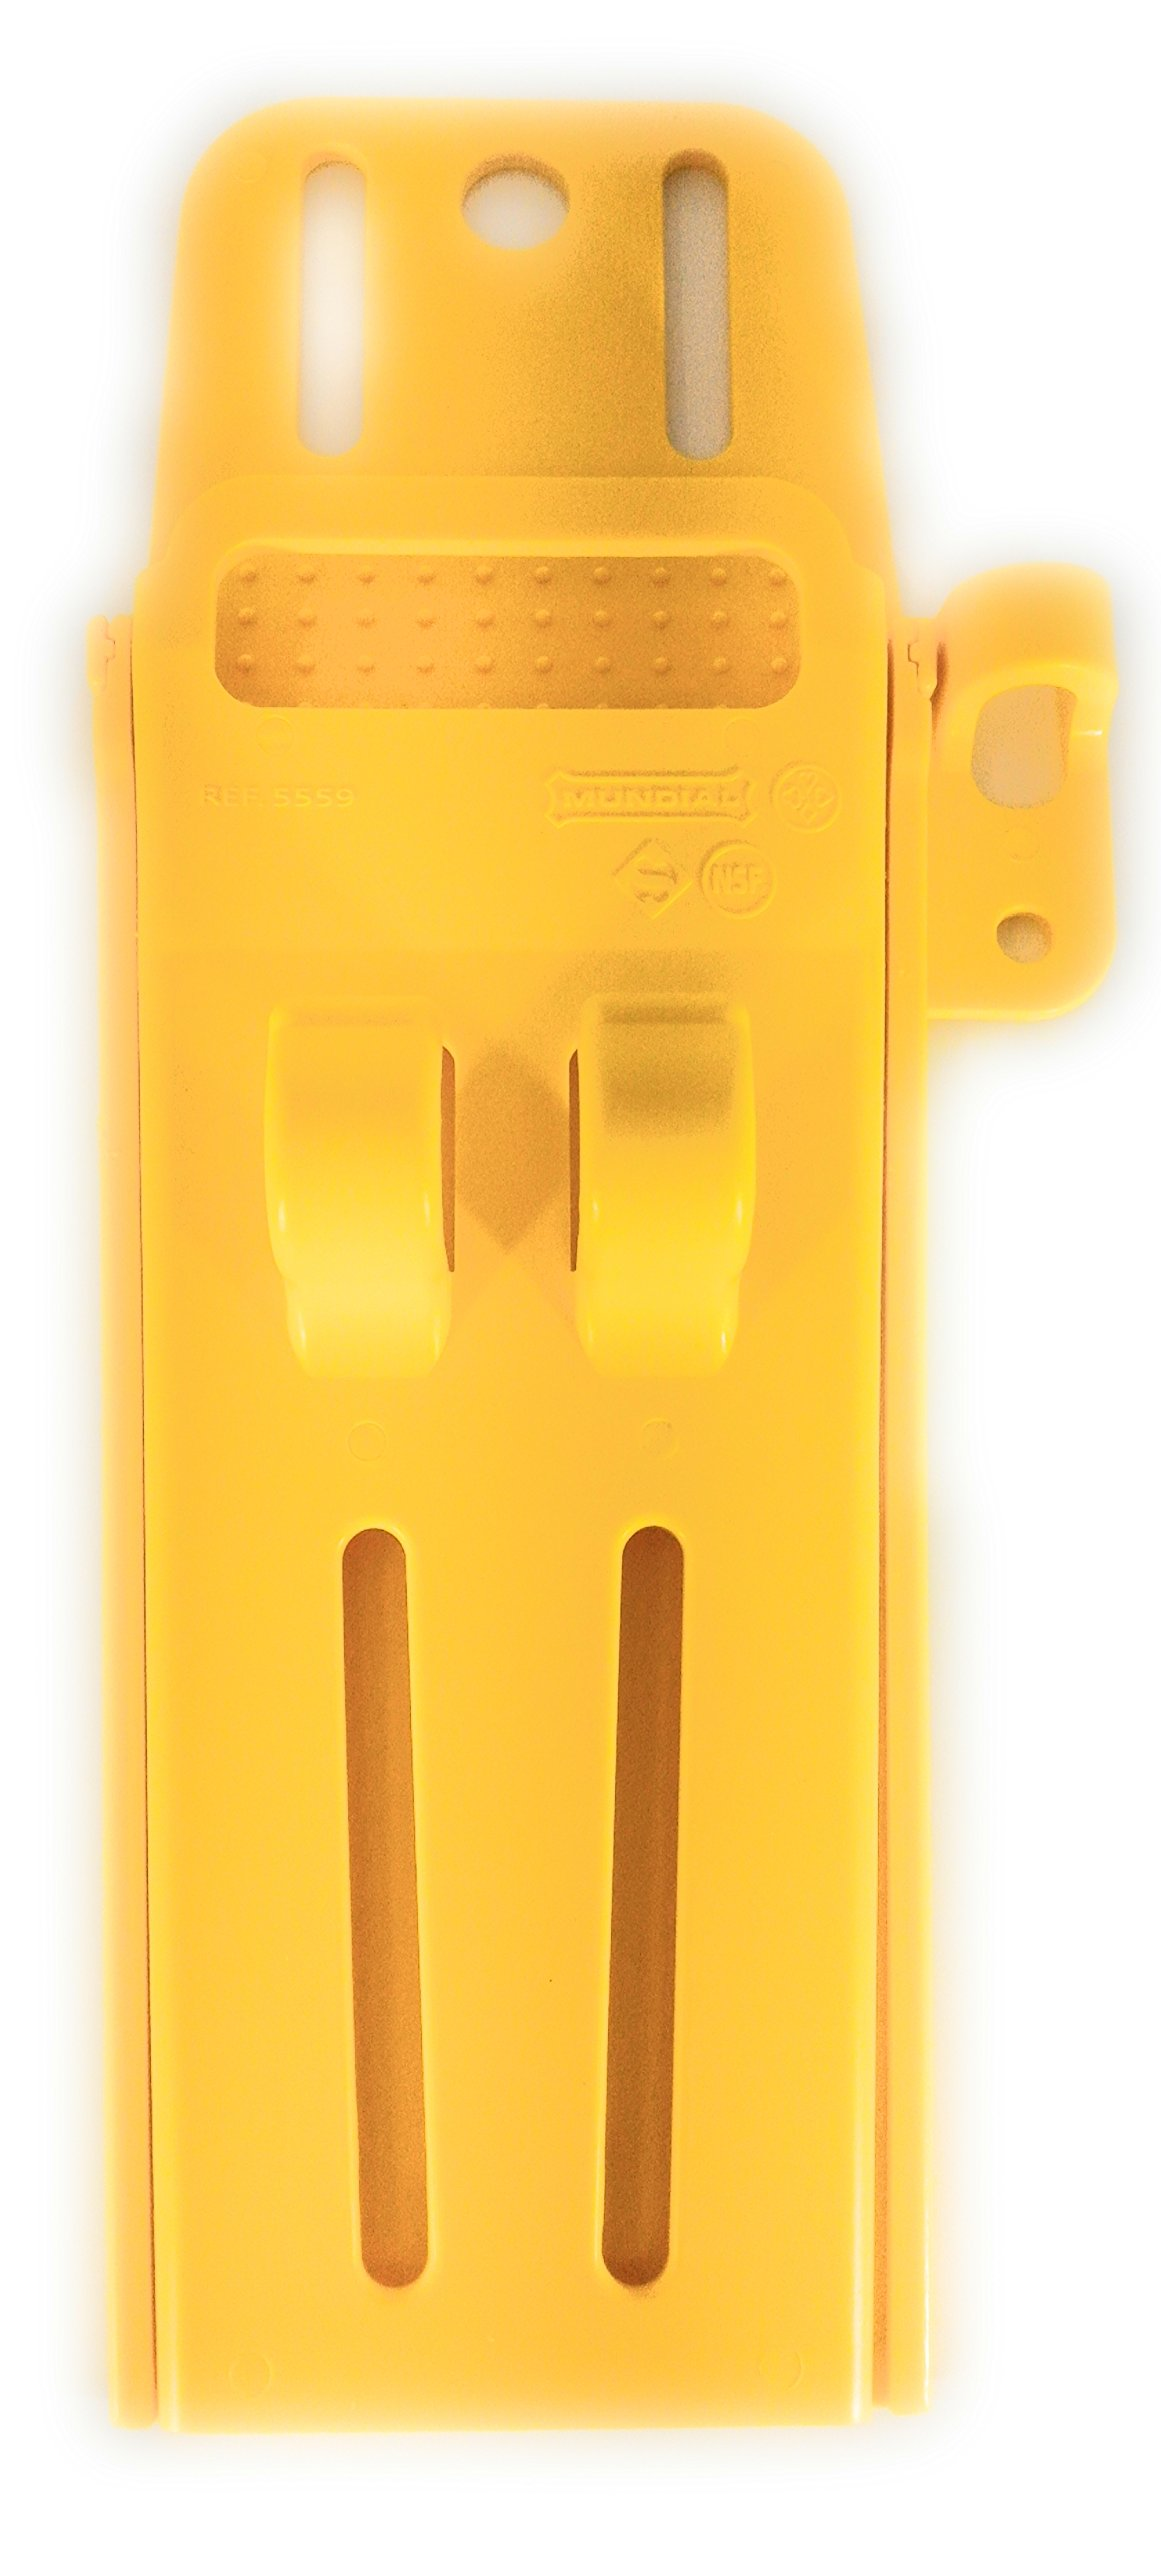 Mundial Master Butcher Series Knife Scabbard - Heavy-Duty Easy Clean Antimicrobial Protected Polymer Construction - Hook And Steel Holder - NSF Certified - Made In Brazil - Pro Butcher Model (Yellow)